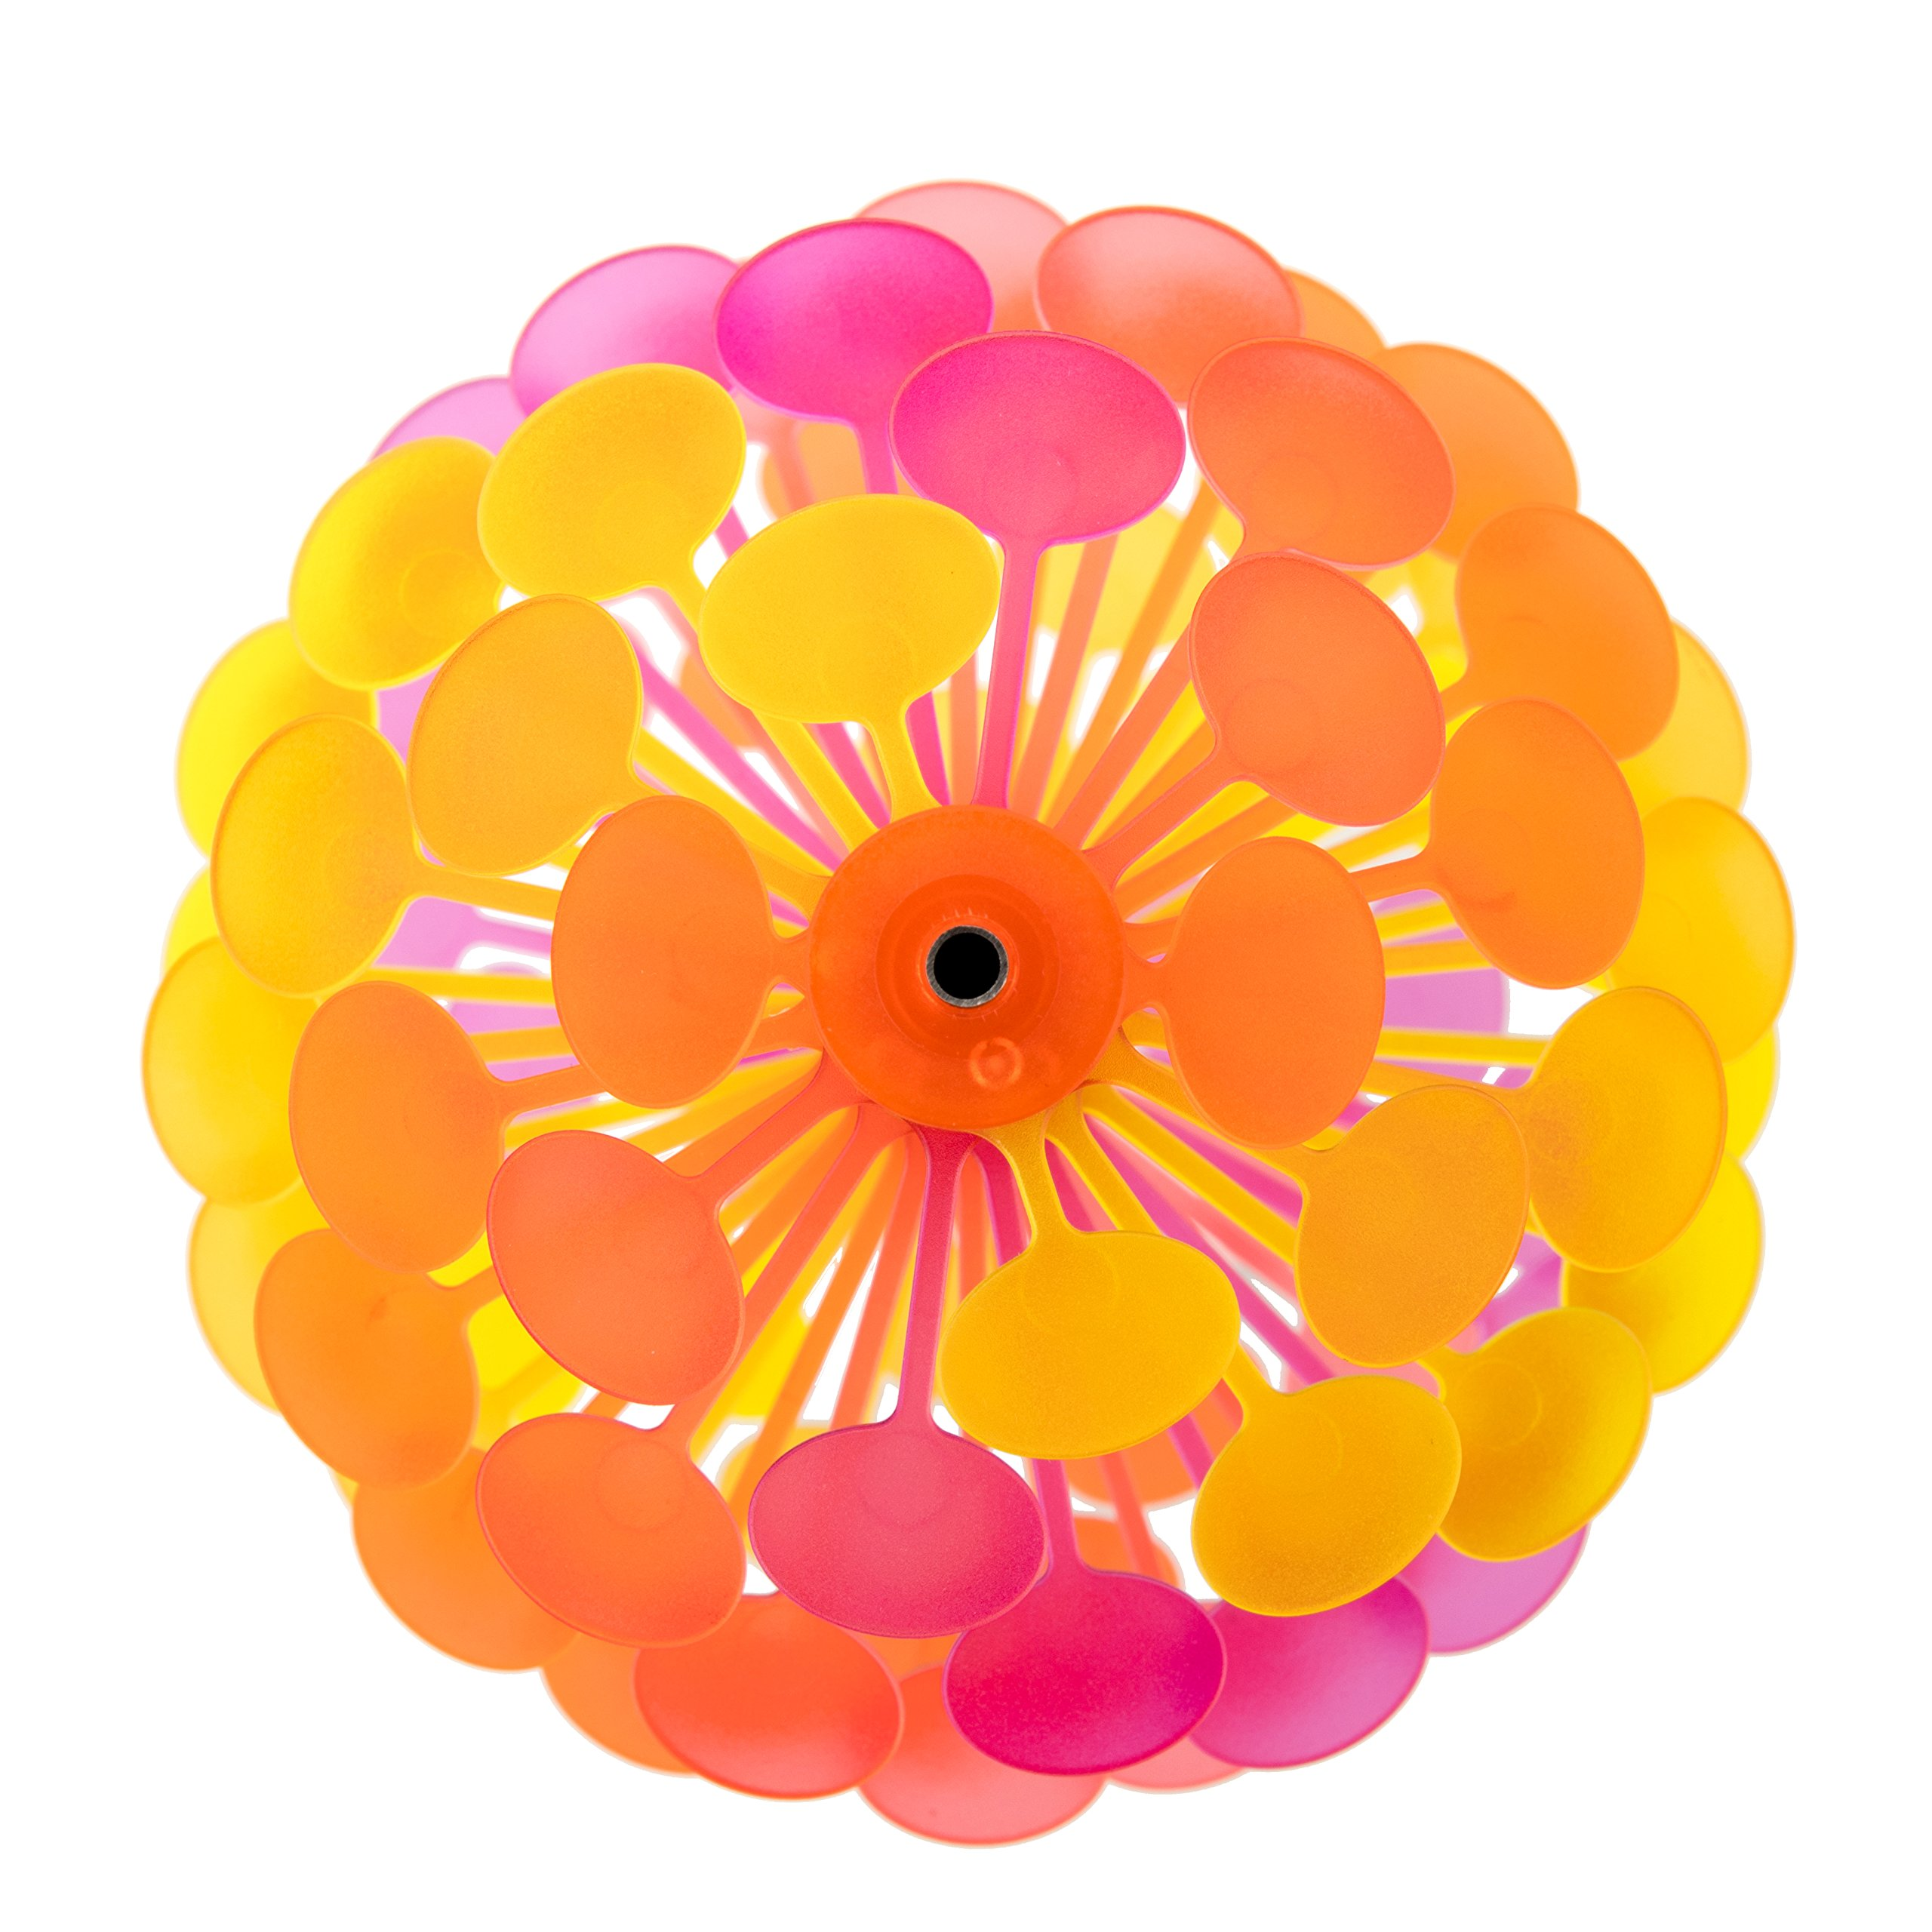 playableART A0456 Lollipopter - Mango Fandango Translucent (Domed Tube Packaging) Toy, Large by playableART (Image #5)